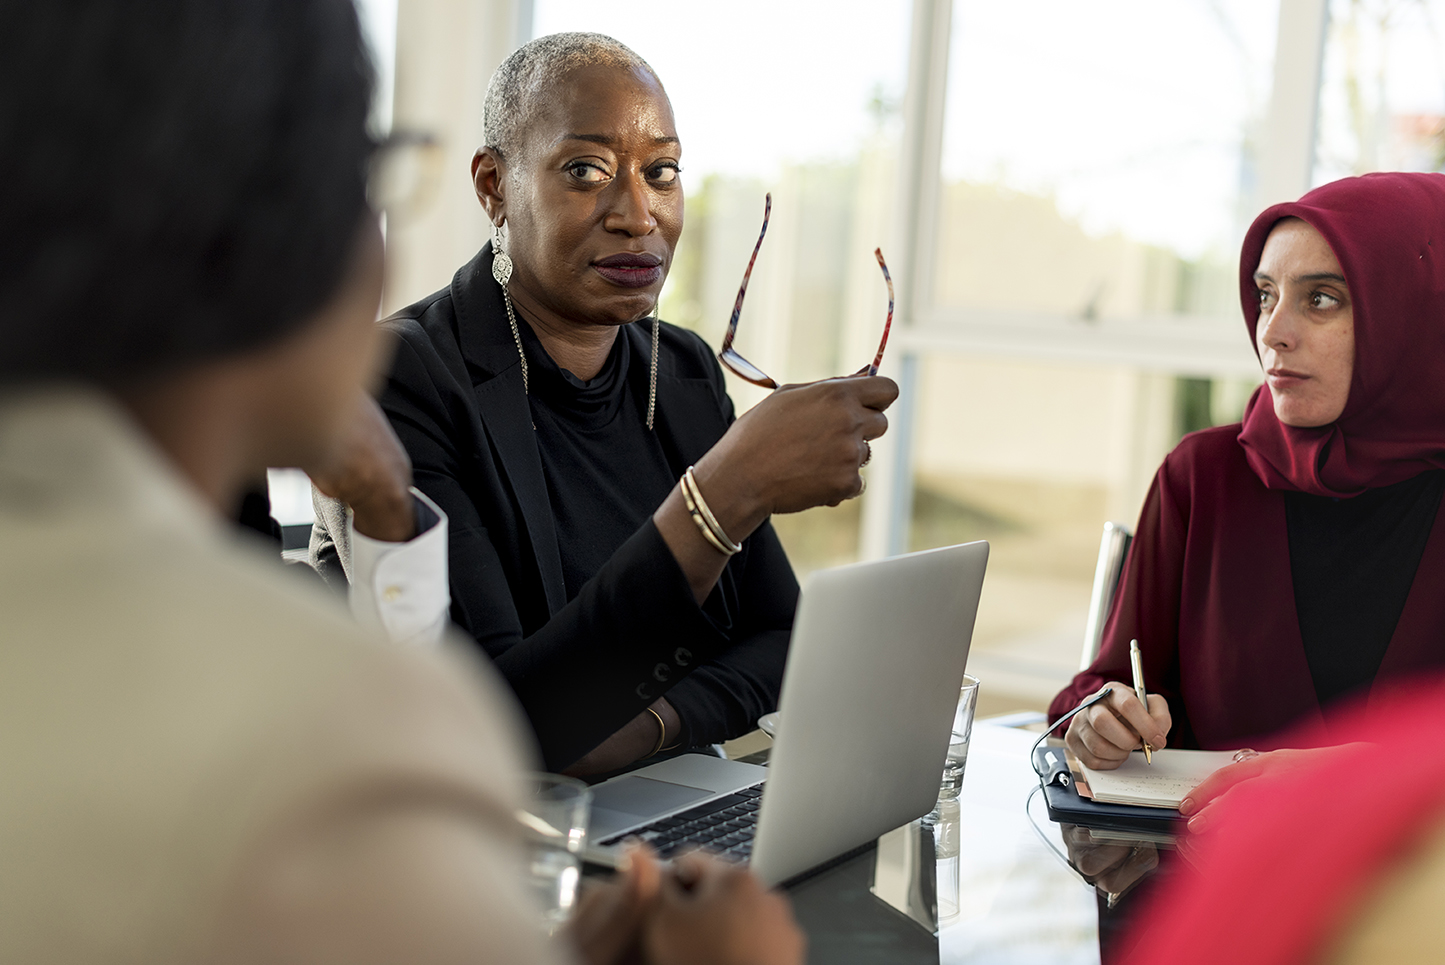 A middle-aged black woman professional leading a meeting with a multicultural and multiracial working group